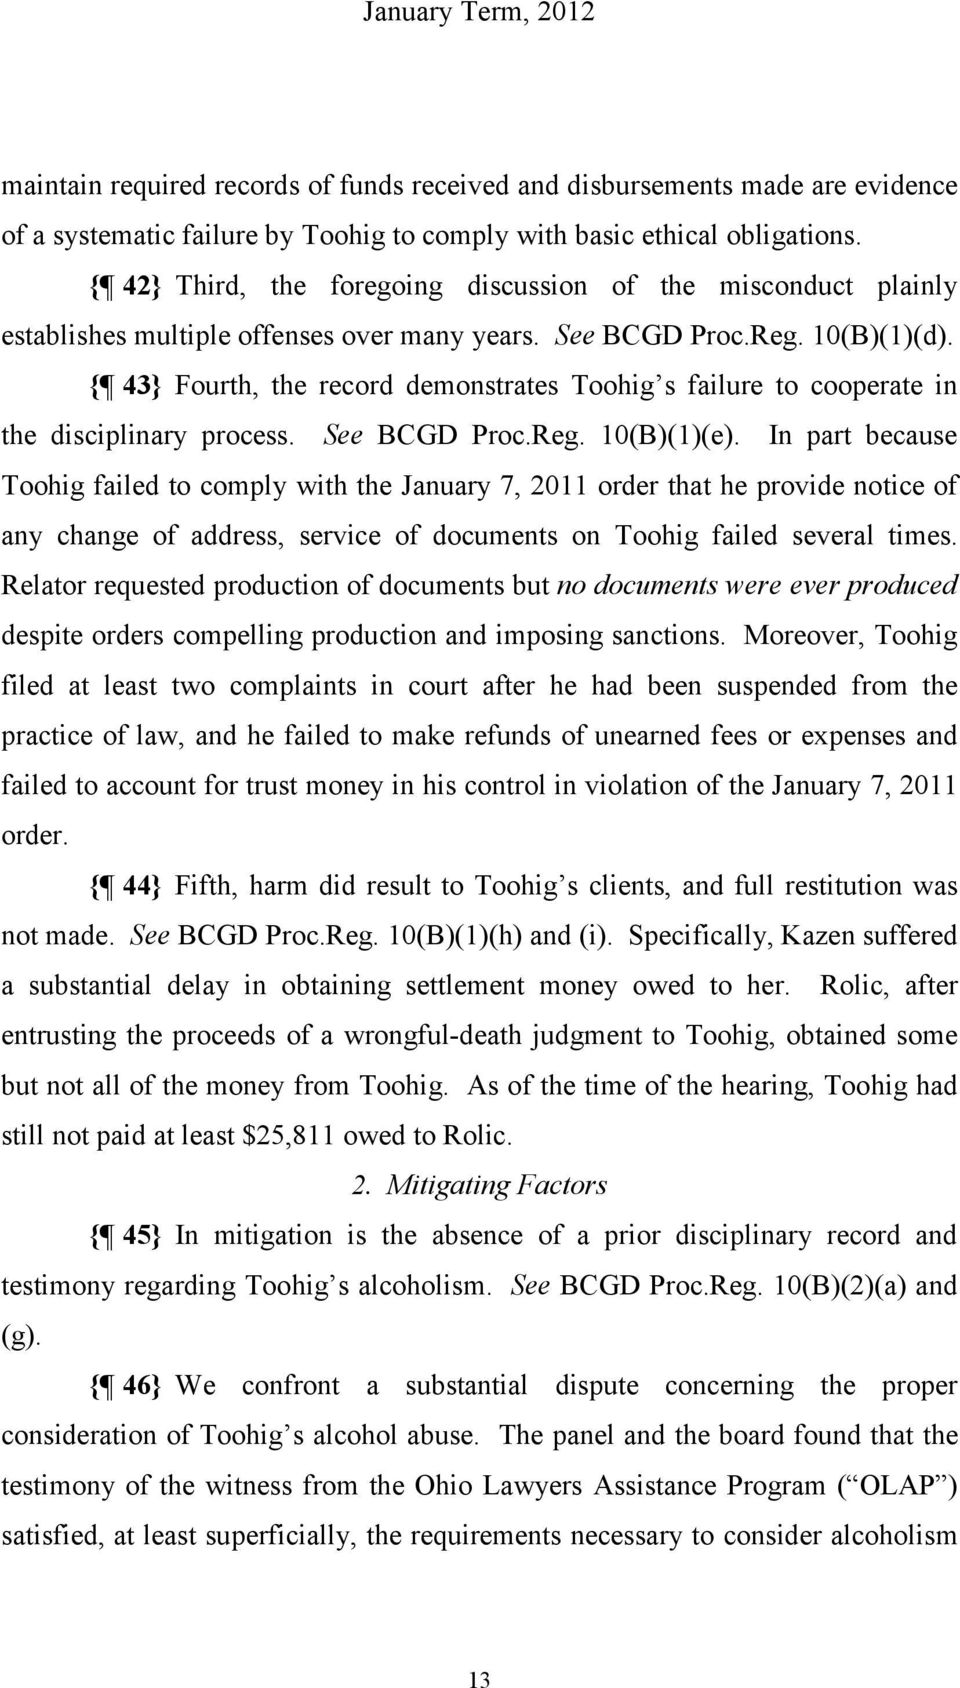 { 43} Fourth, the record demonstrates Toohig s failure to cooperate in the disciplinary process. See BCGD Proc.Reg. 10(B)(1)(e).